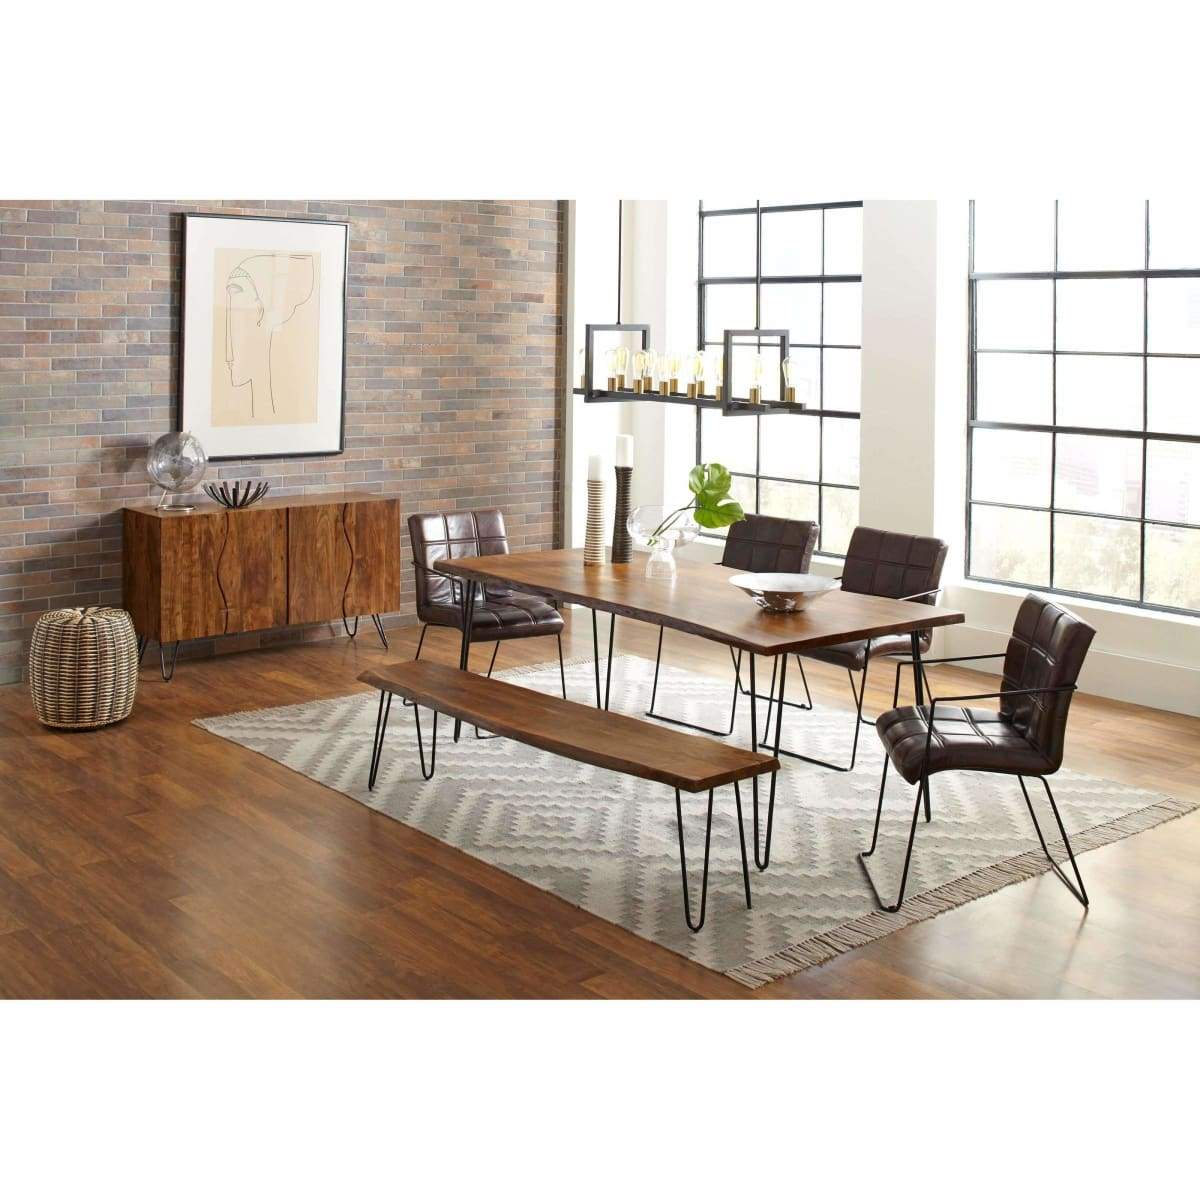 Natures Edge 79 Dining Table and Chair Set - DININGCOUNTERHEIGHT